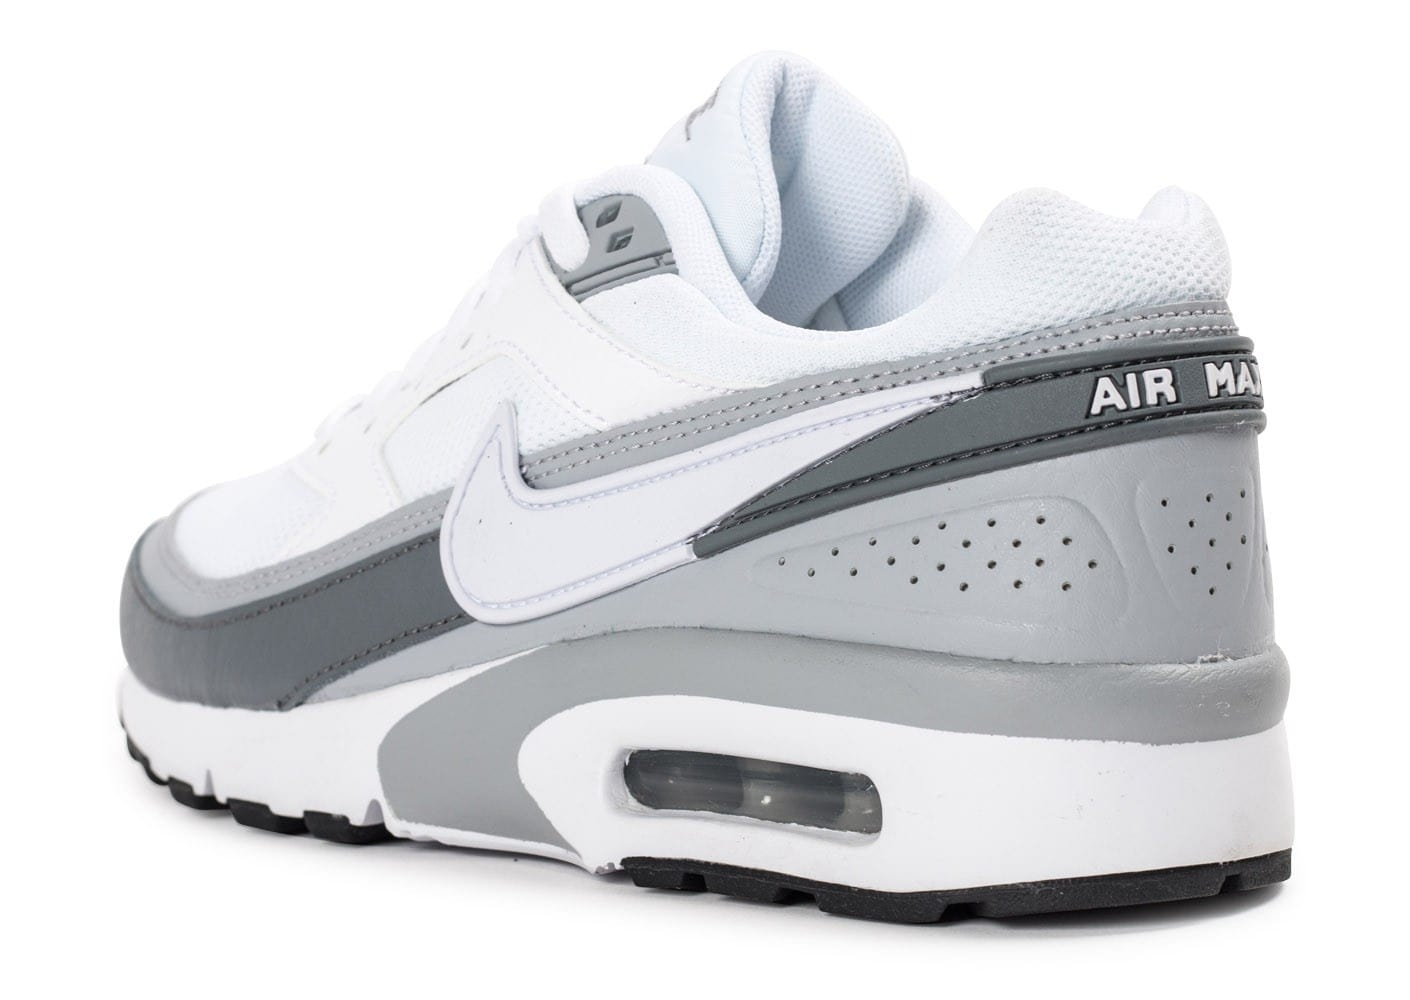 nike air max bw junior blanche et grise chaussures chaussures chausport. Black Bedroom Furniture Sets. Home Design Ideas